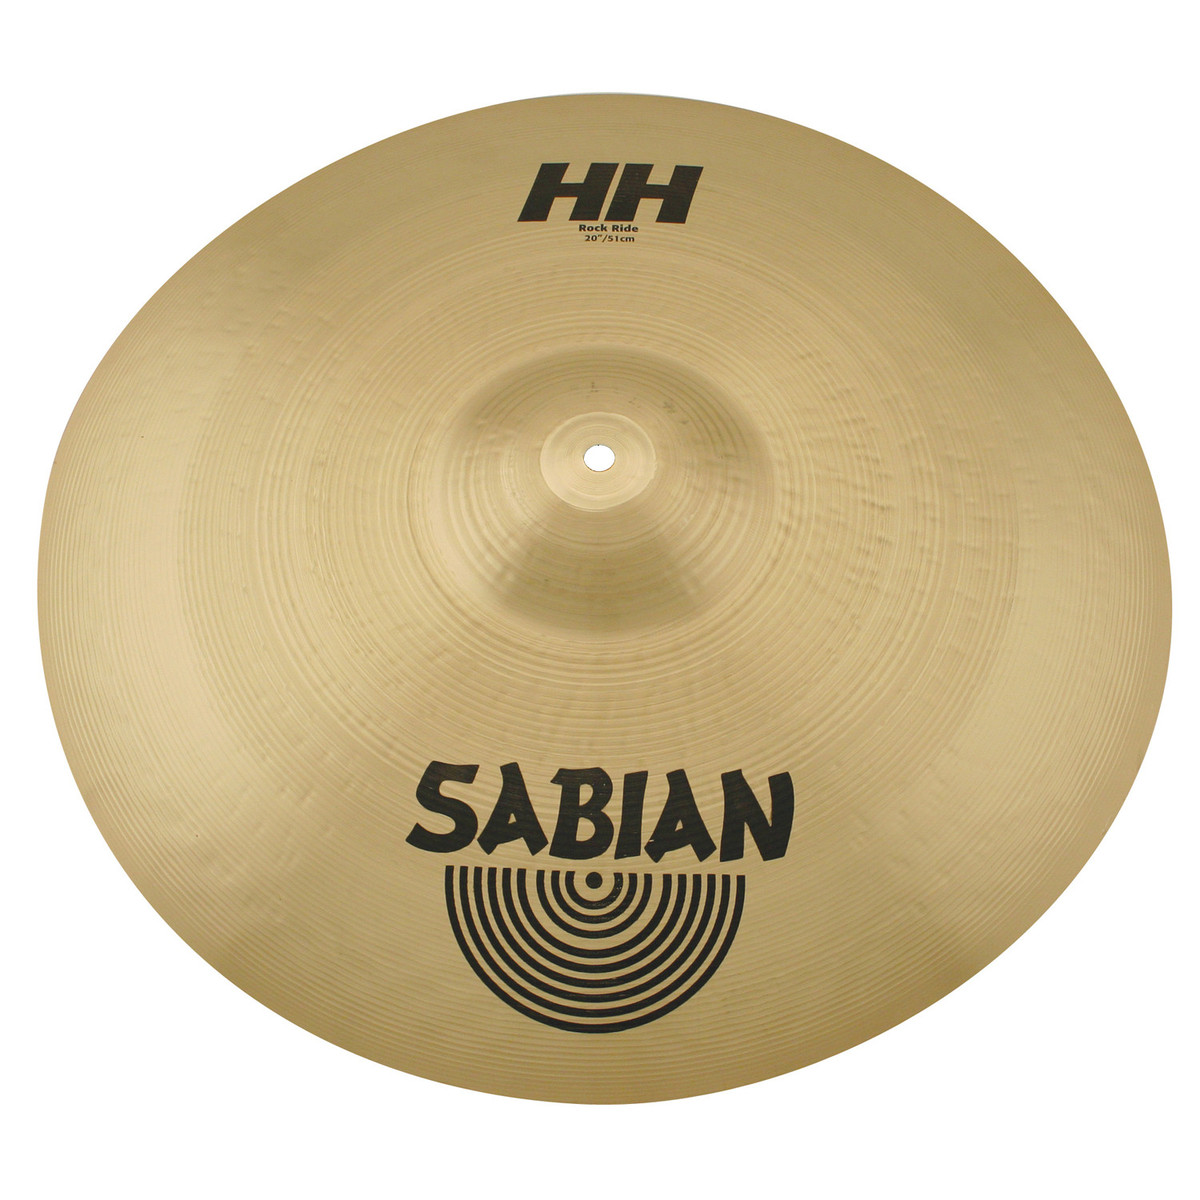 disc sabian hh 20 39 39 rock ride cymbal natural finish at gear4music. Black Bedroom Furniture Sets. Home Design Ideas